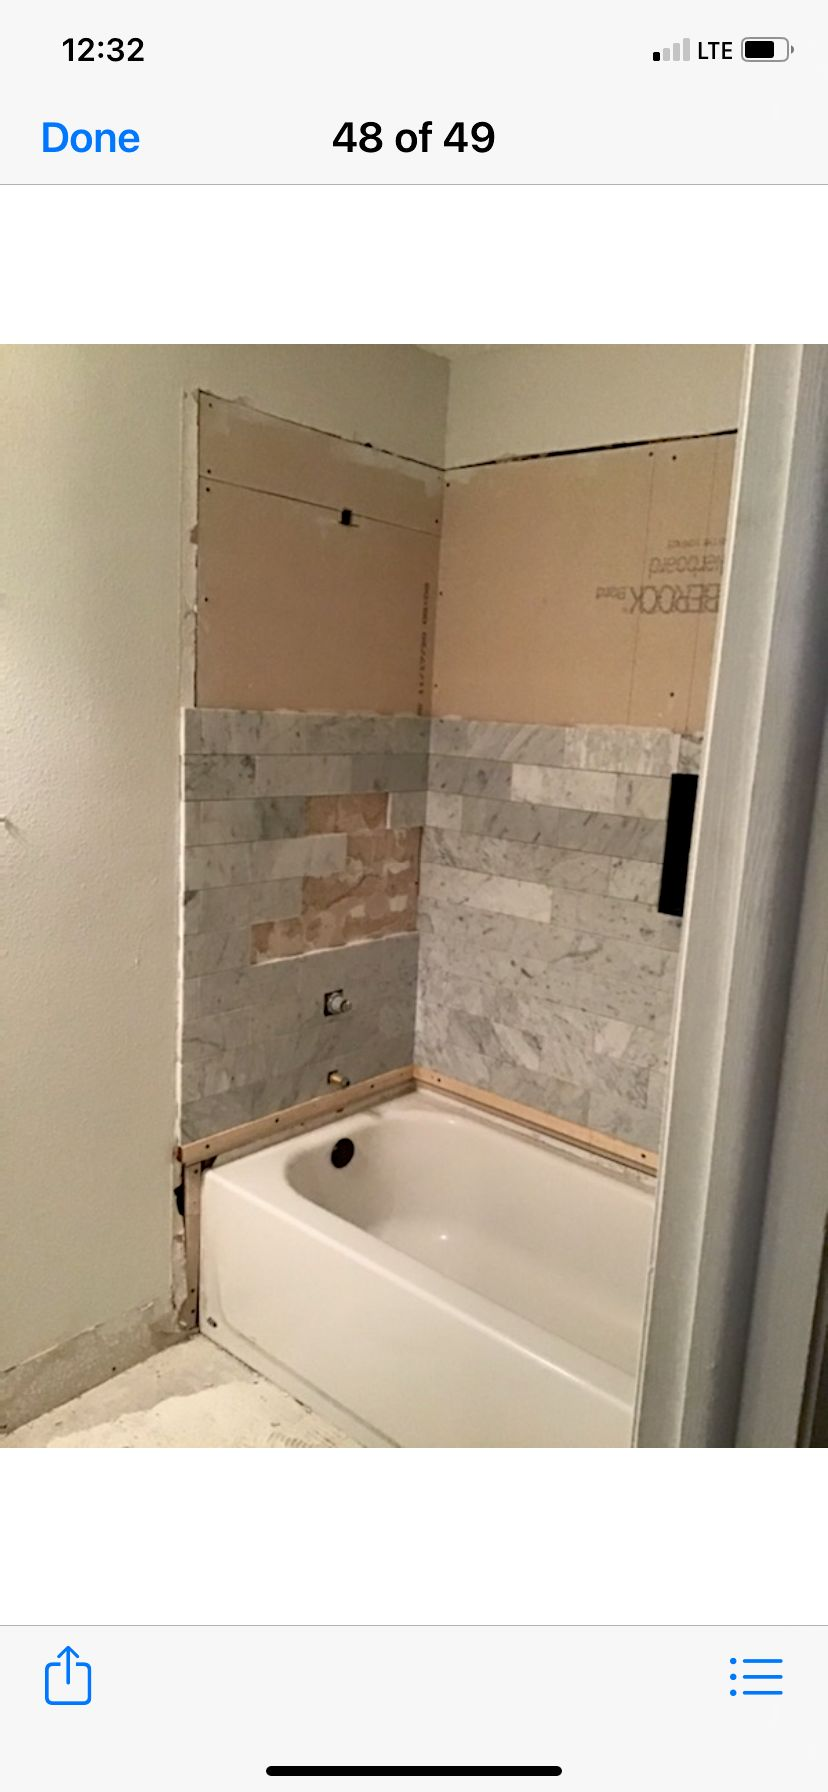 Fixing another contractors unfinished work